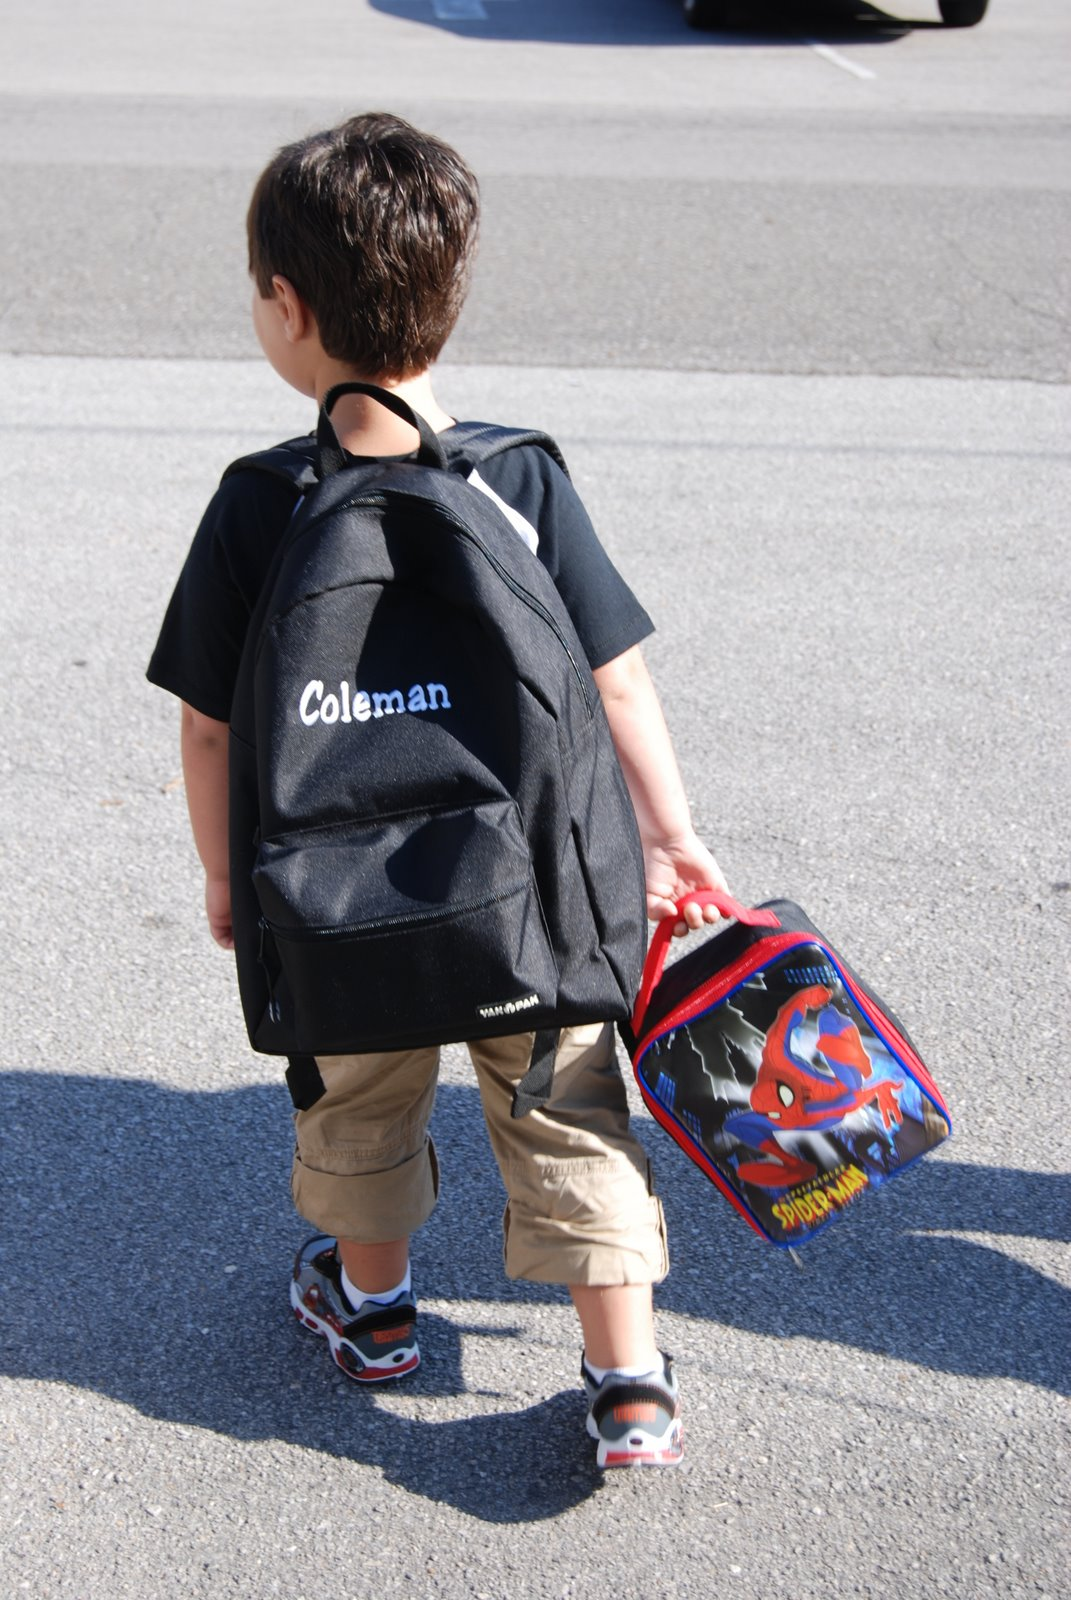 The Lantrip Family: My Big Boy Going To School